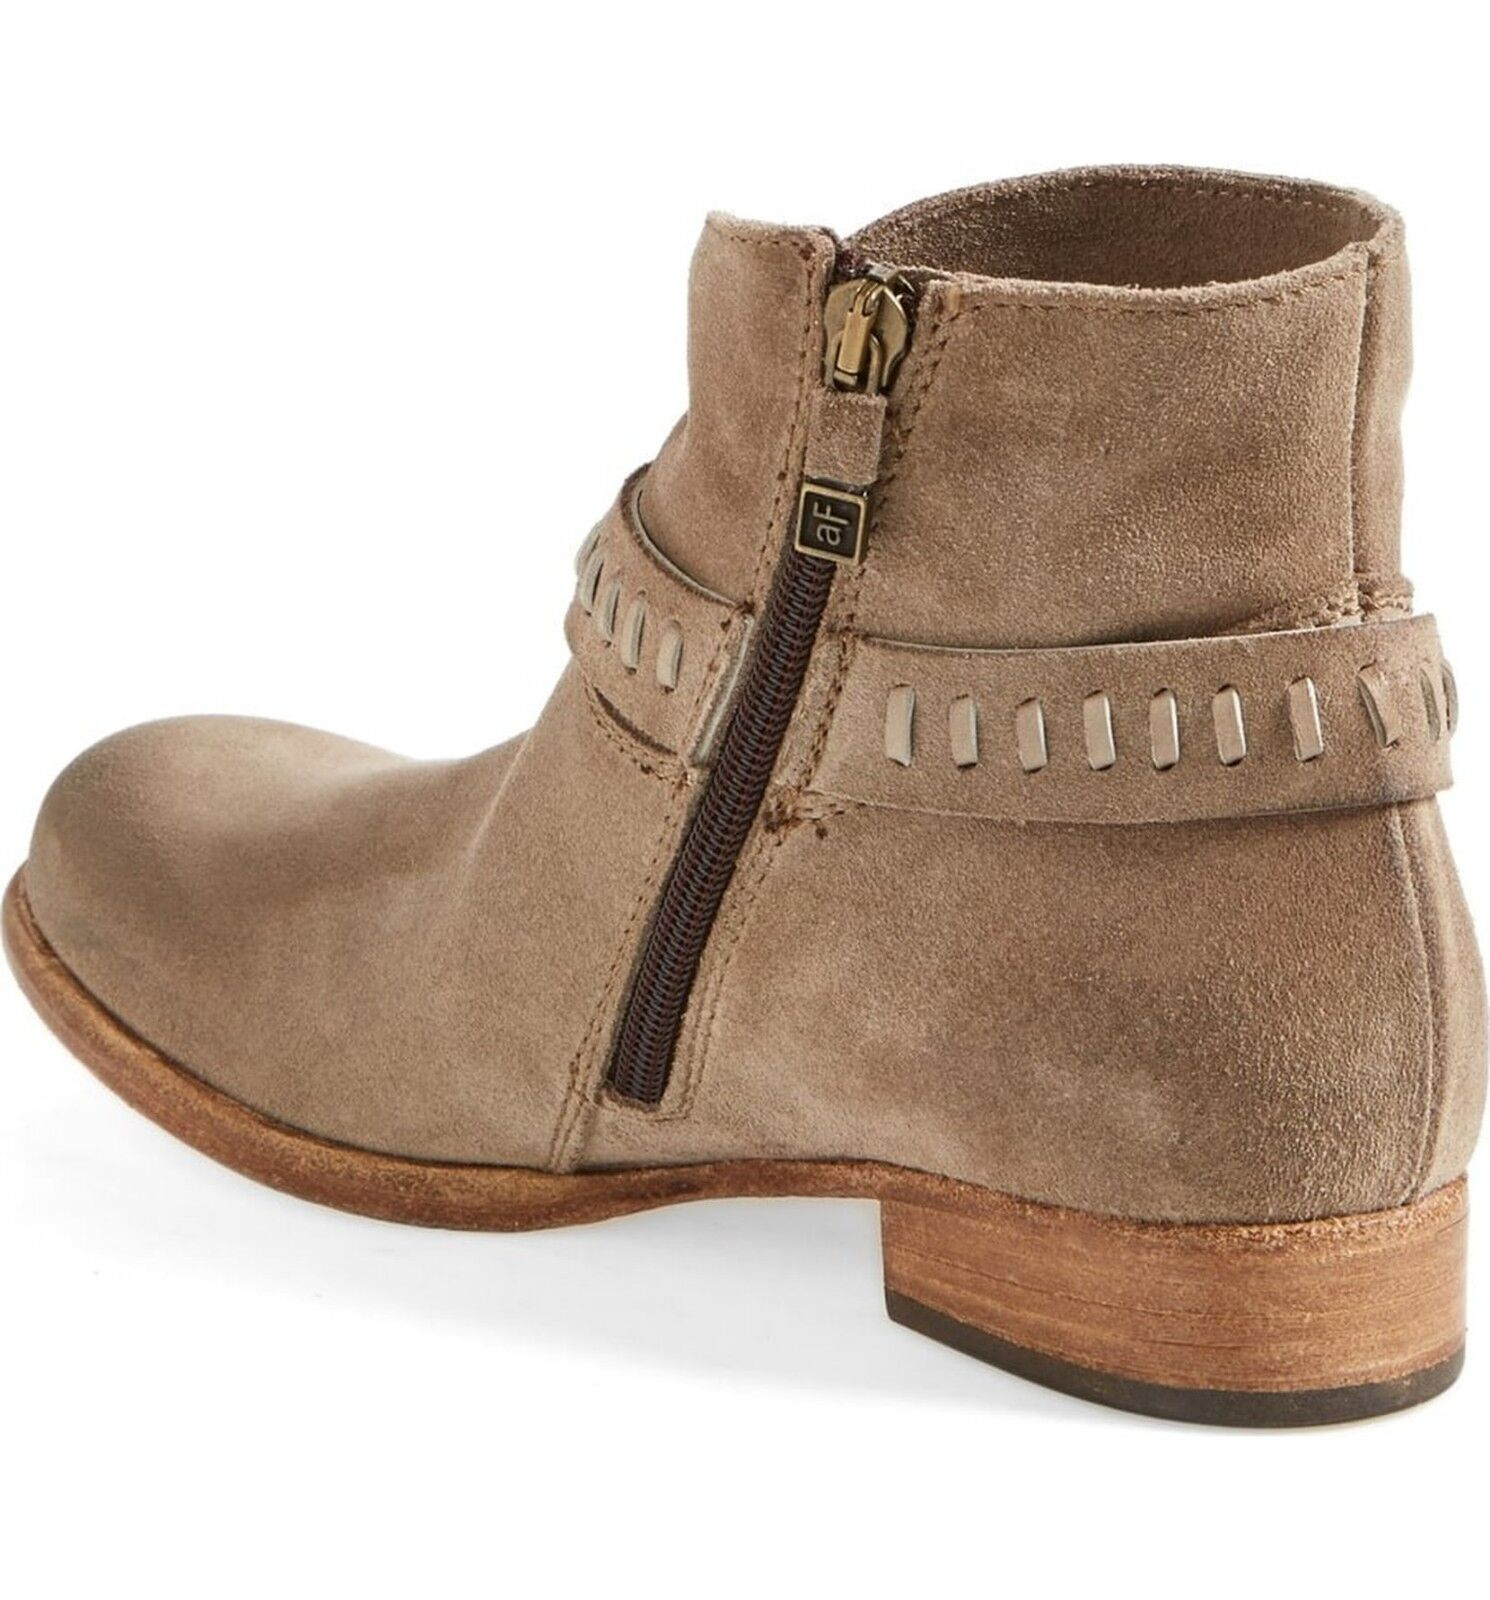 NEW Alberto Fermani 'Sofia' Suede Suede Suede Harness Boot, Women Size 35.5 (5.5 US),  575 77ef54